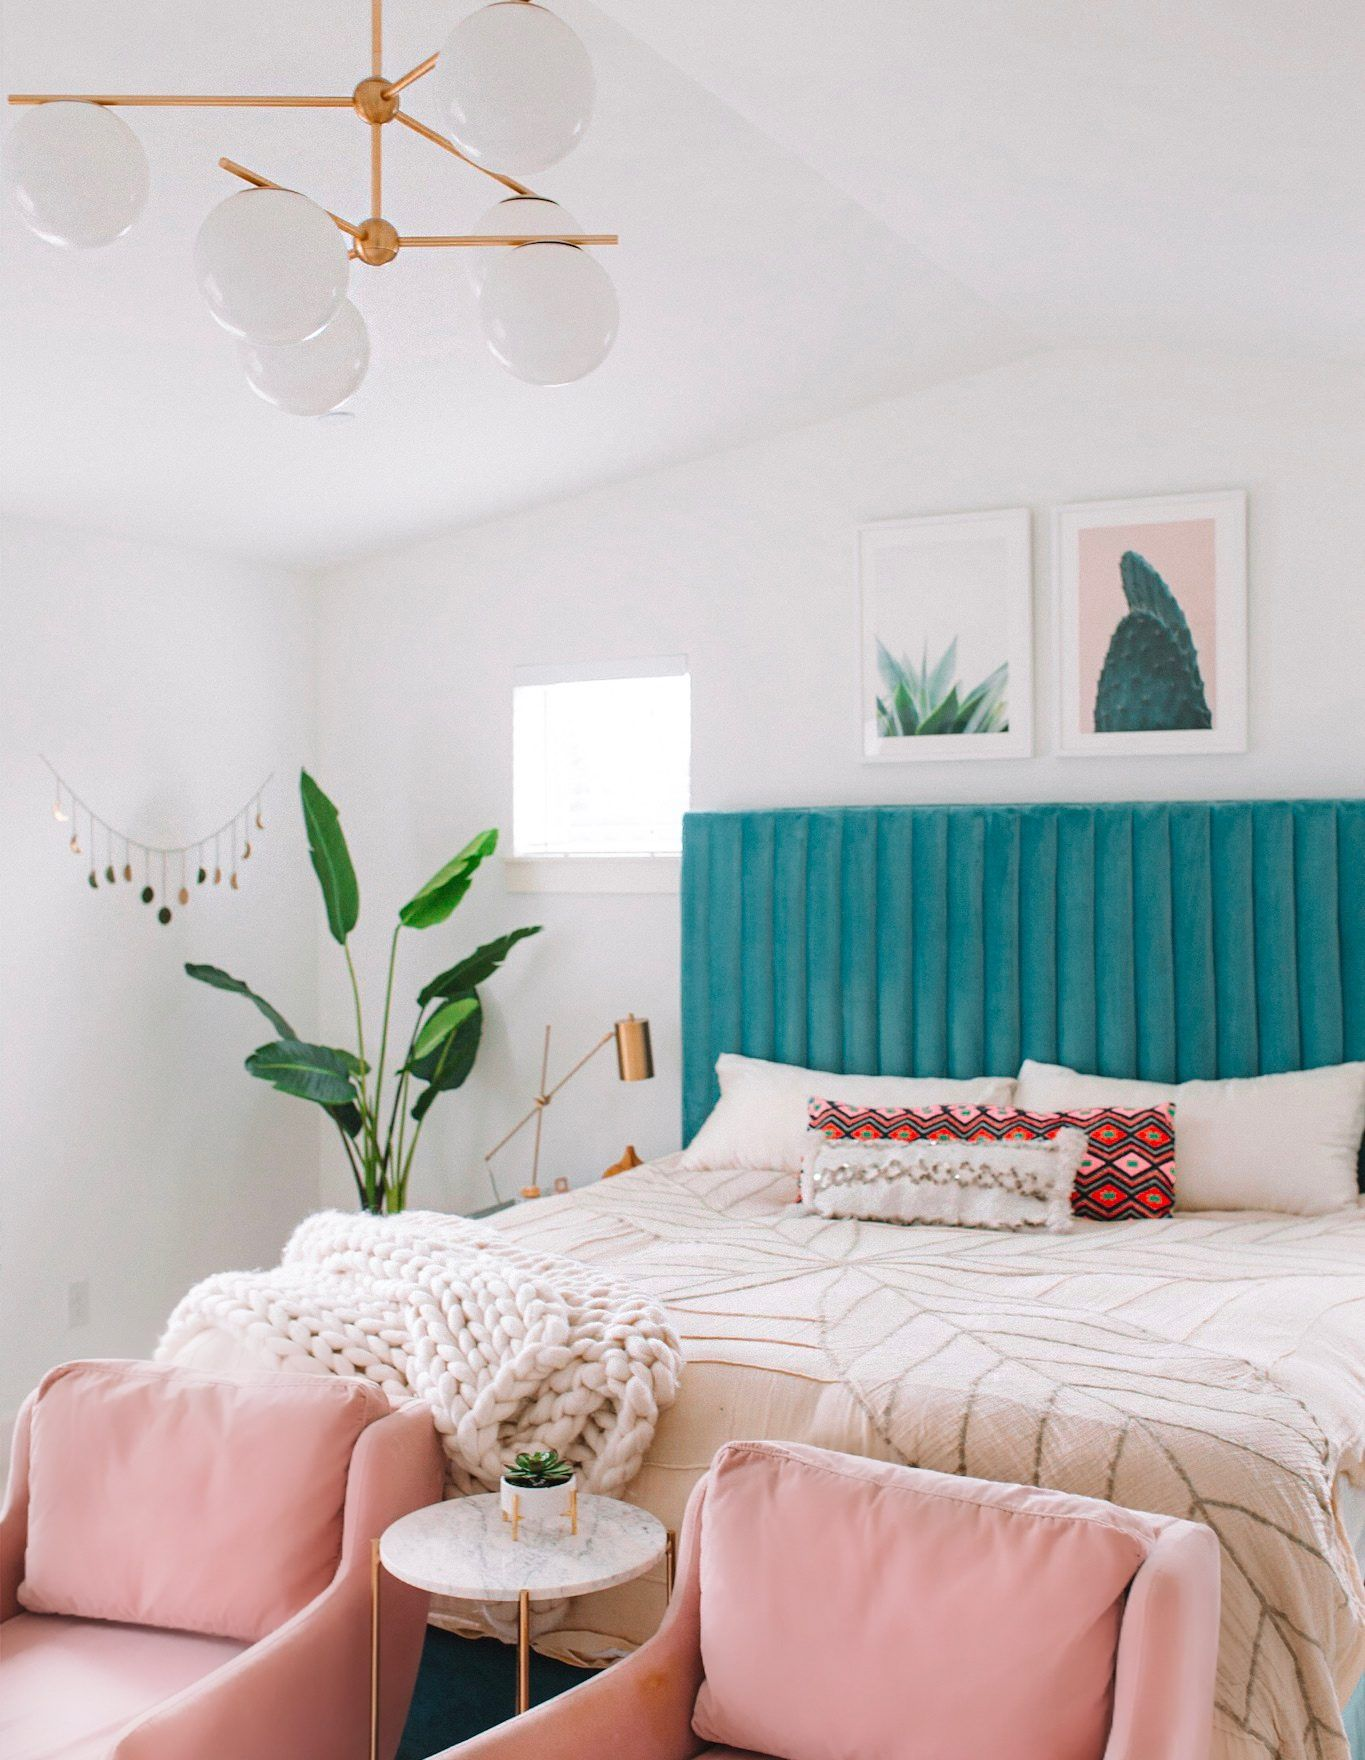 bedroom, white wall, pink chairs, blue velvet headboard, plants, white bulbs chandelier